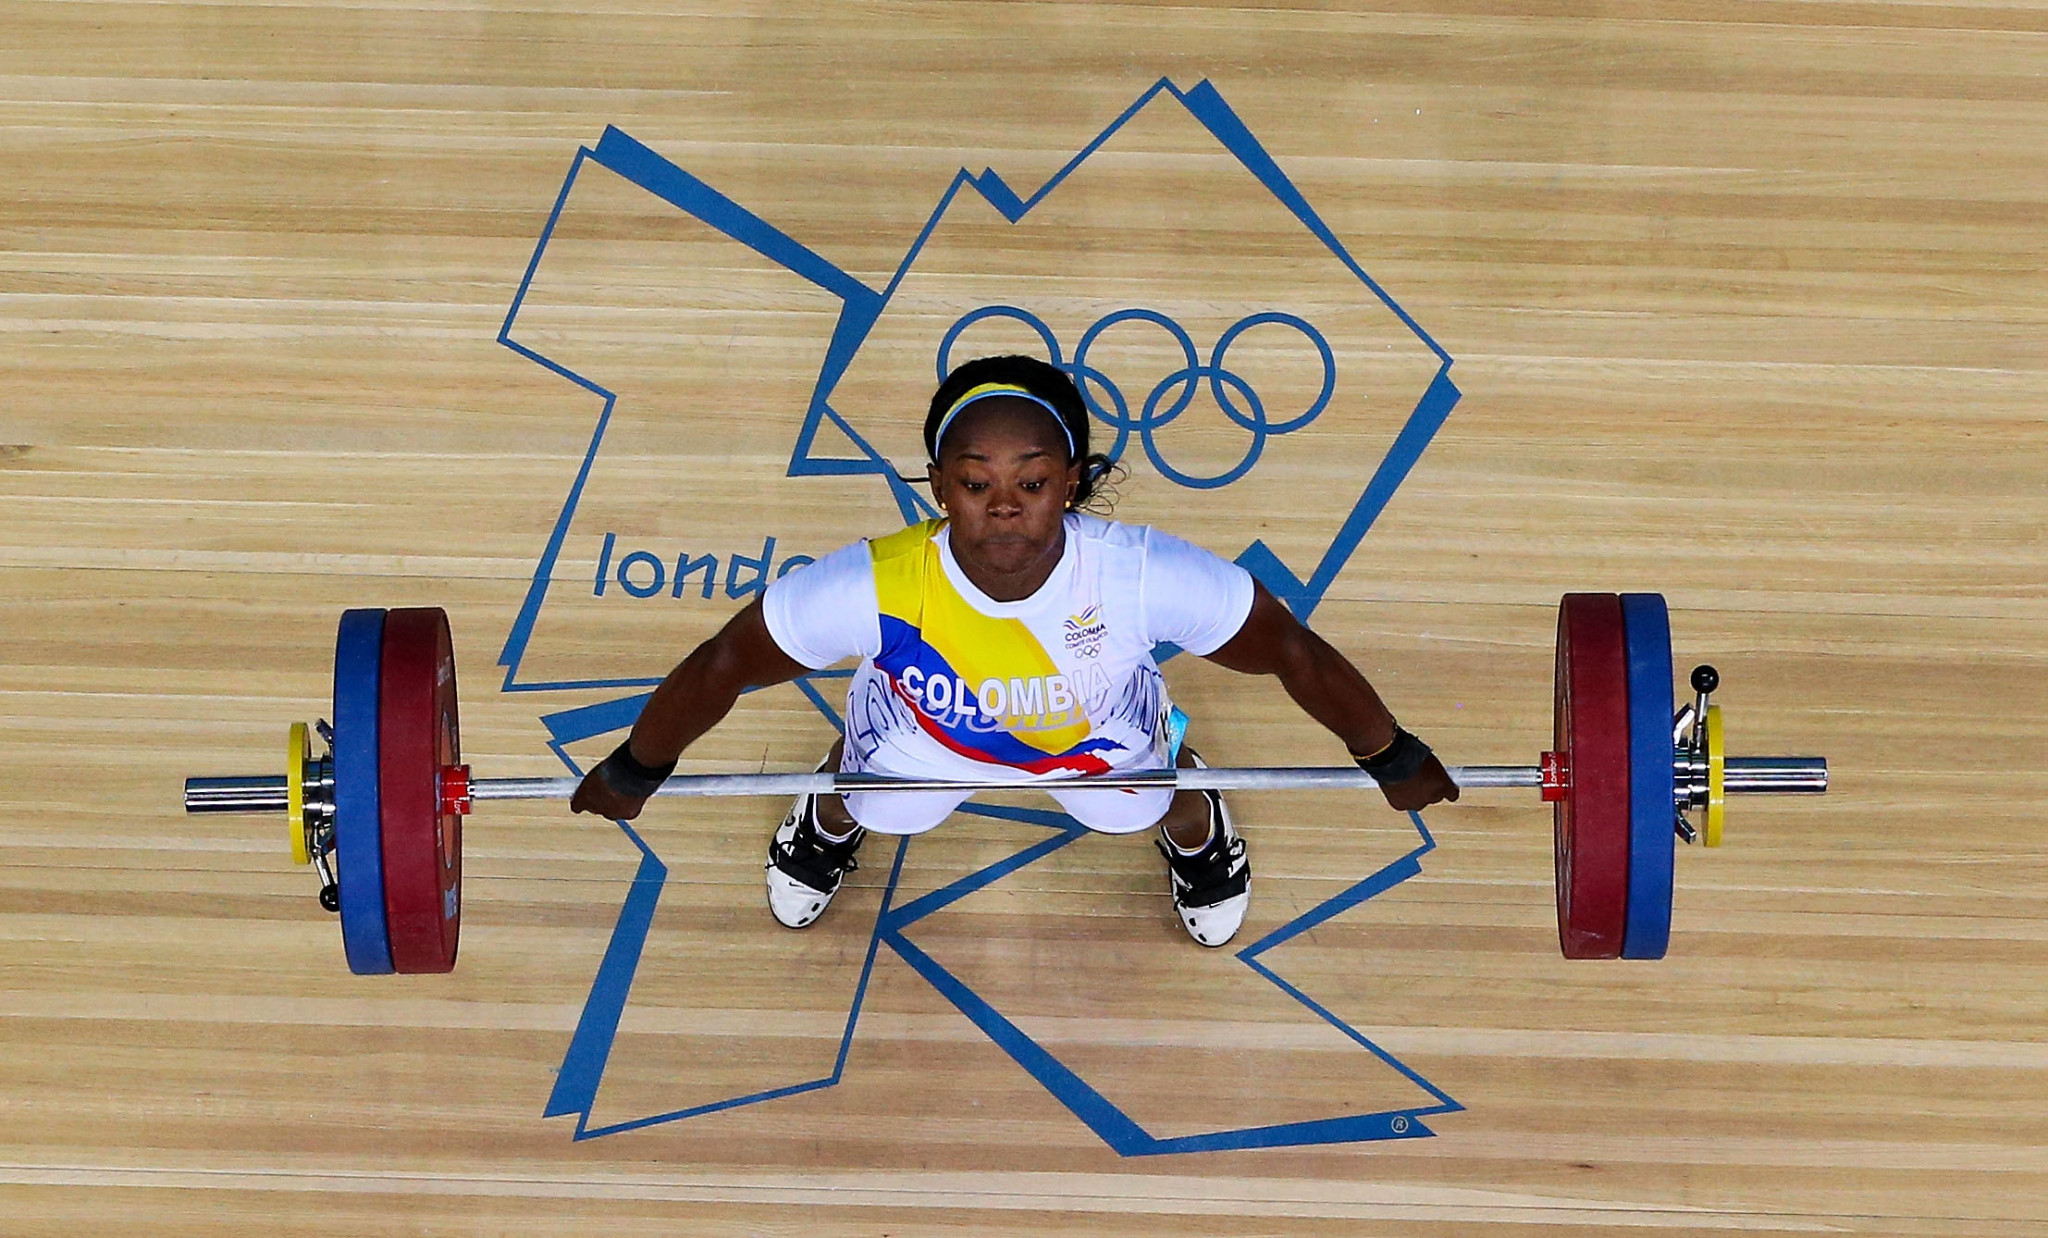 Colombia's Ubaldina Valoyes has now been upgraded to the bronze medal at London 2012 following doping disqualifcations of three rivals who had originally finished ahead of her ©Getty Images